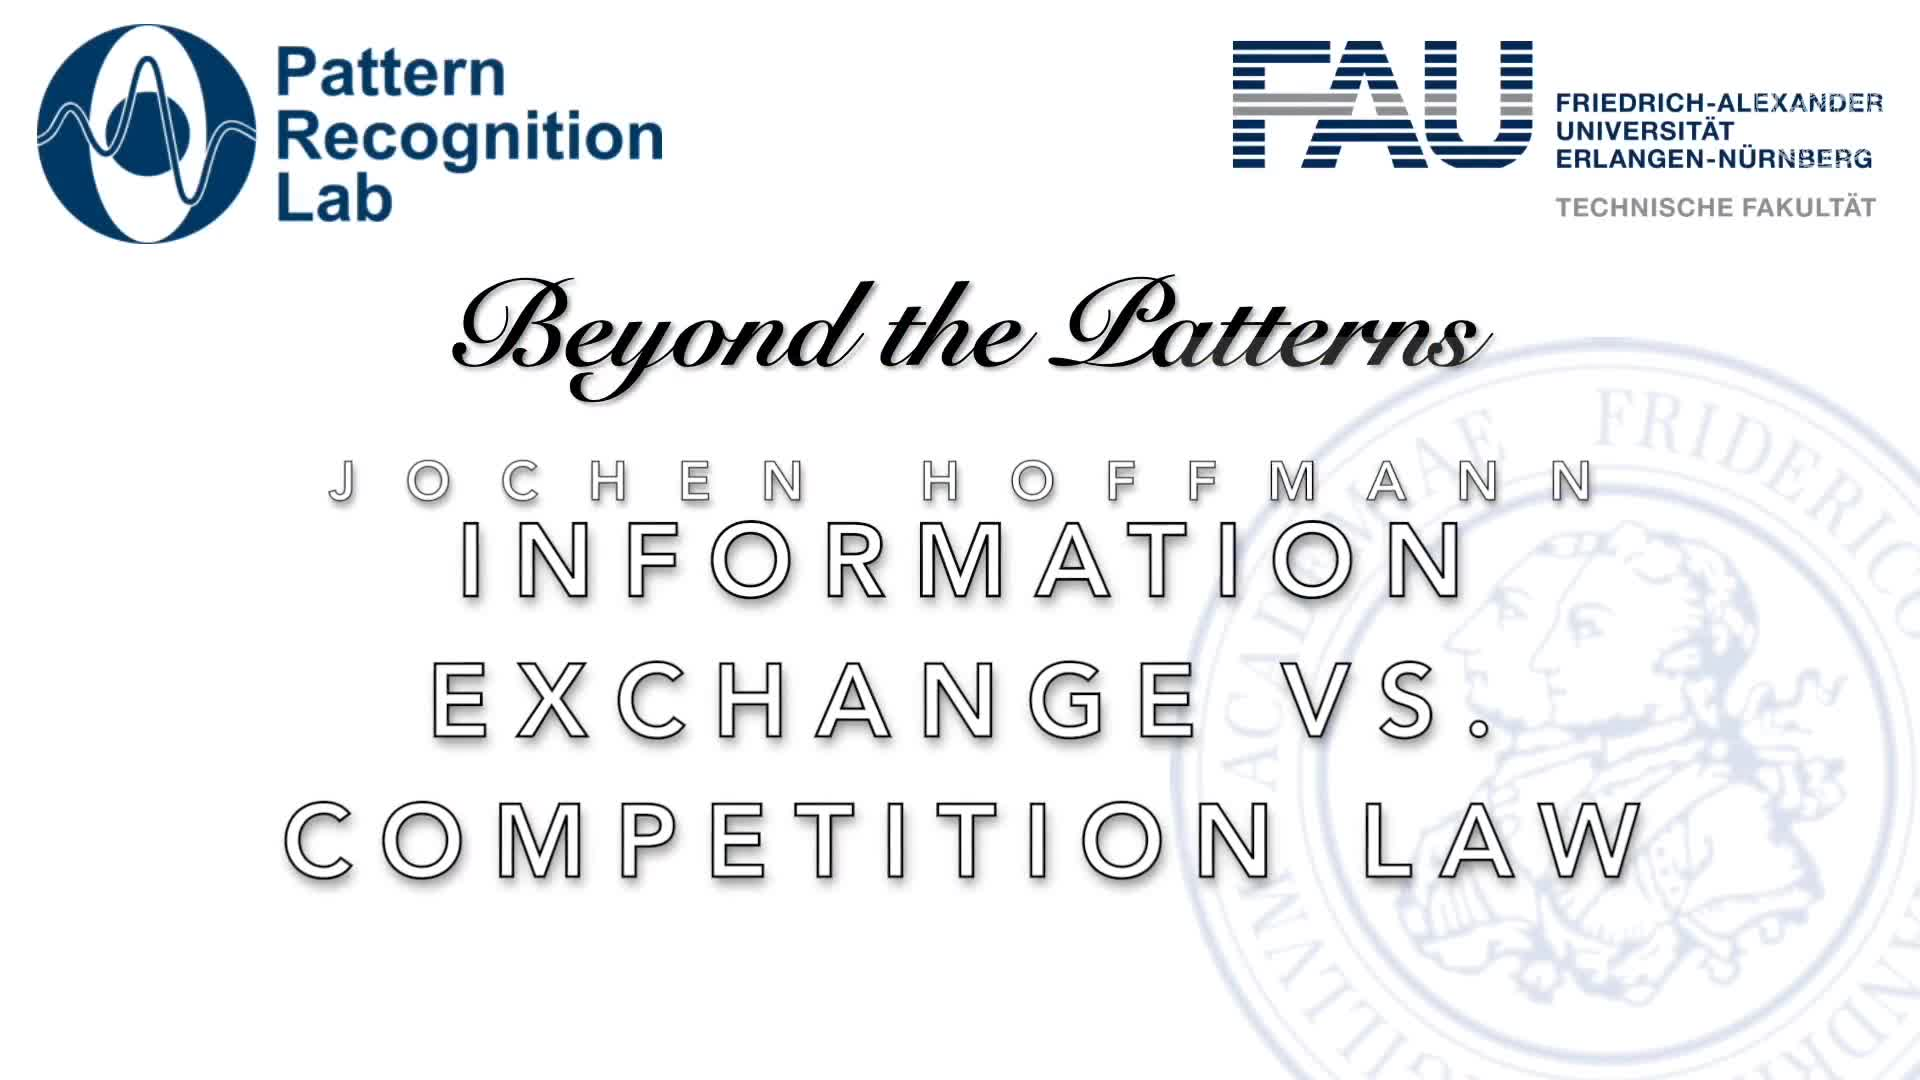 Beyond the Patterns - Jochen Hoffmann - Information exchange as an infringement of competition law preview image